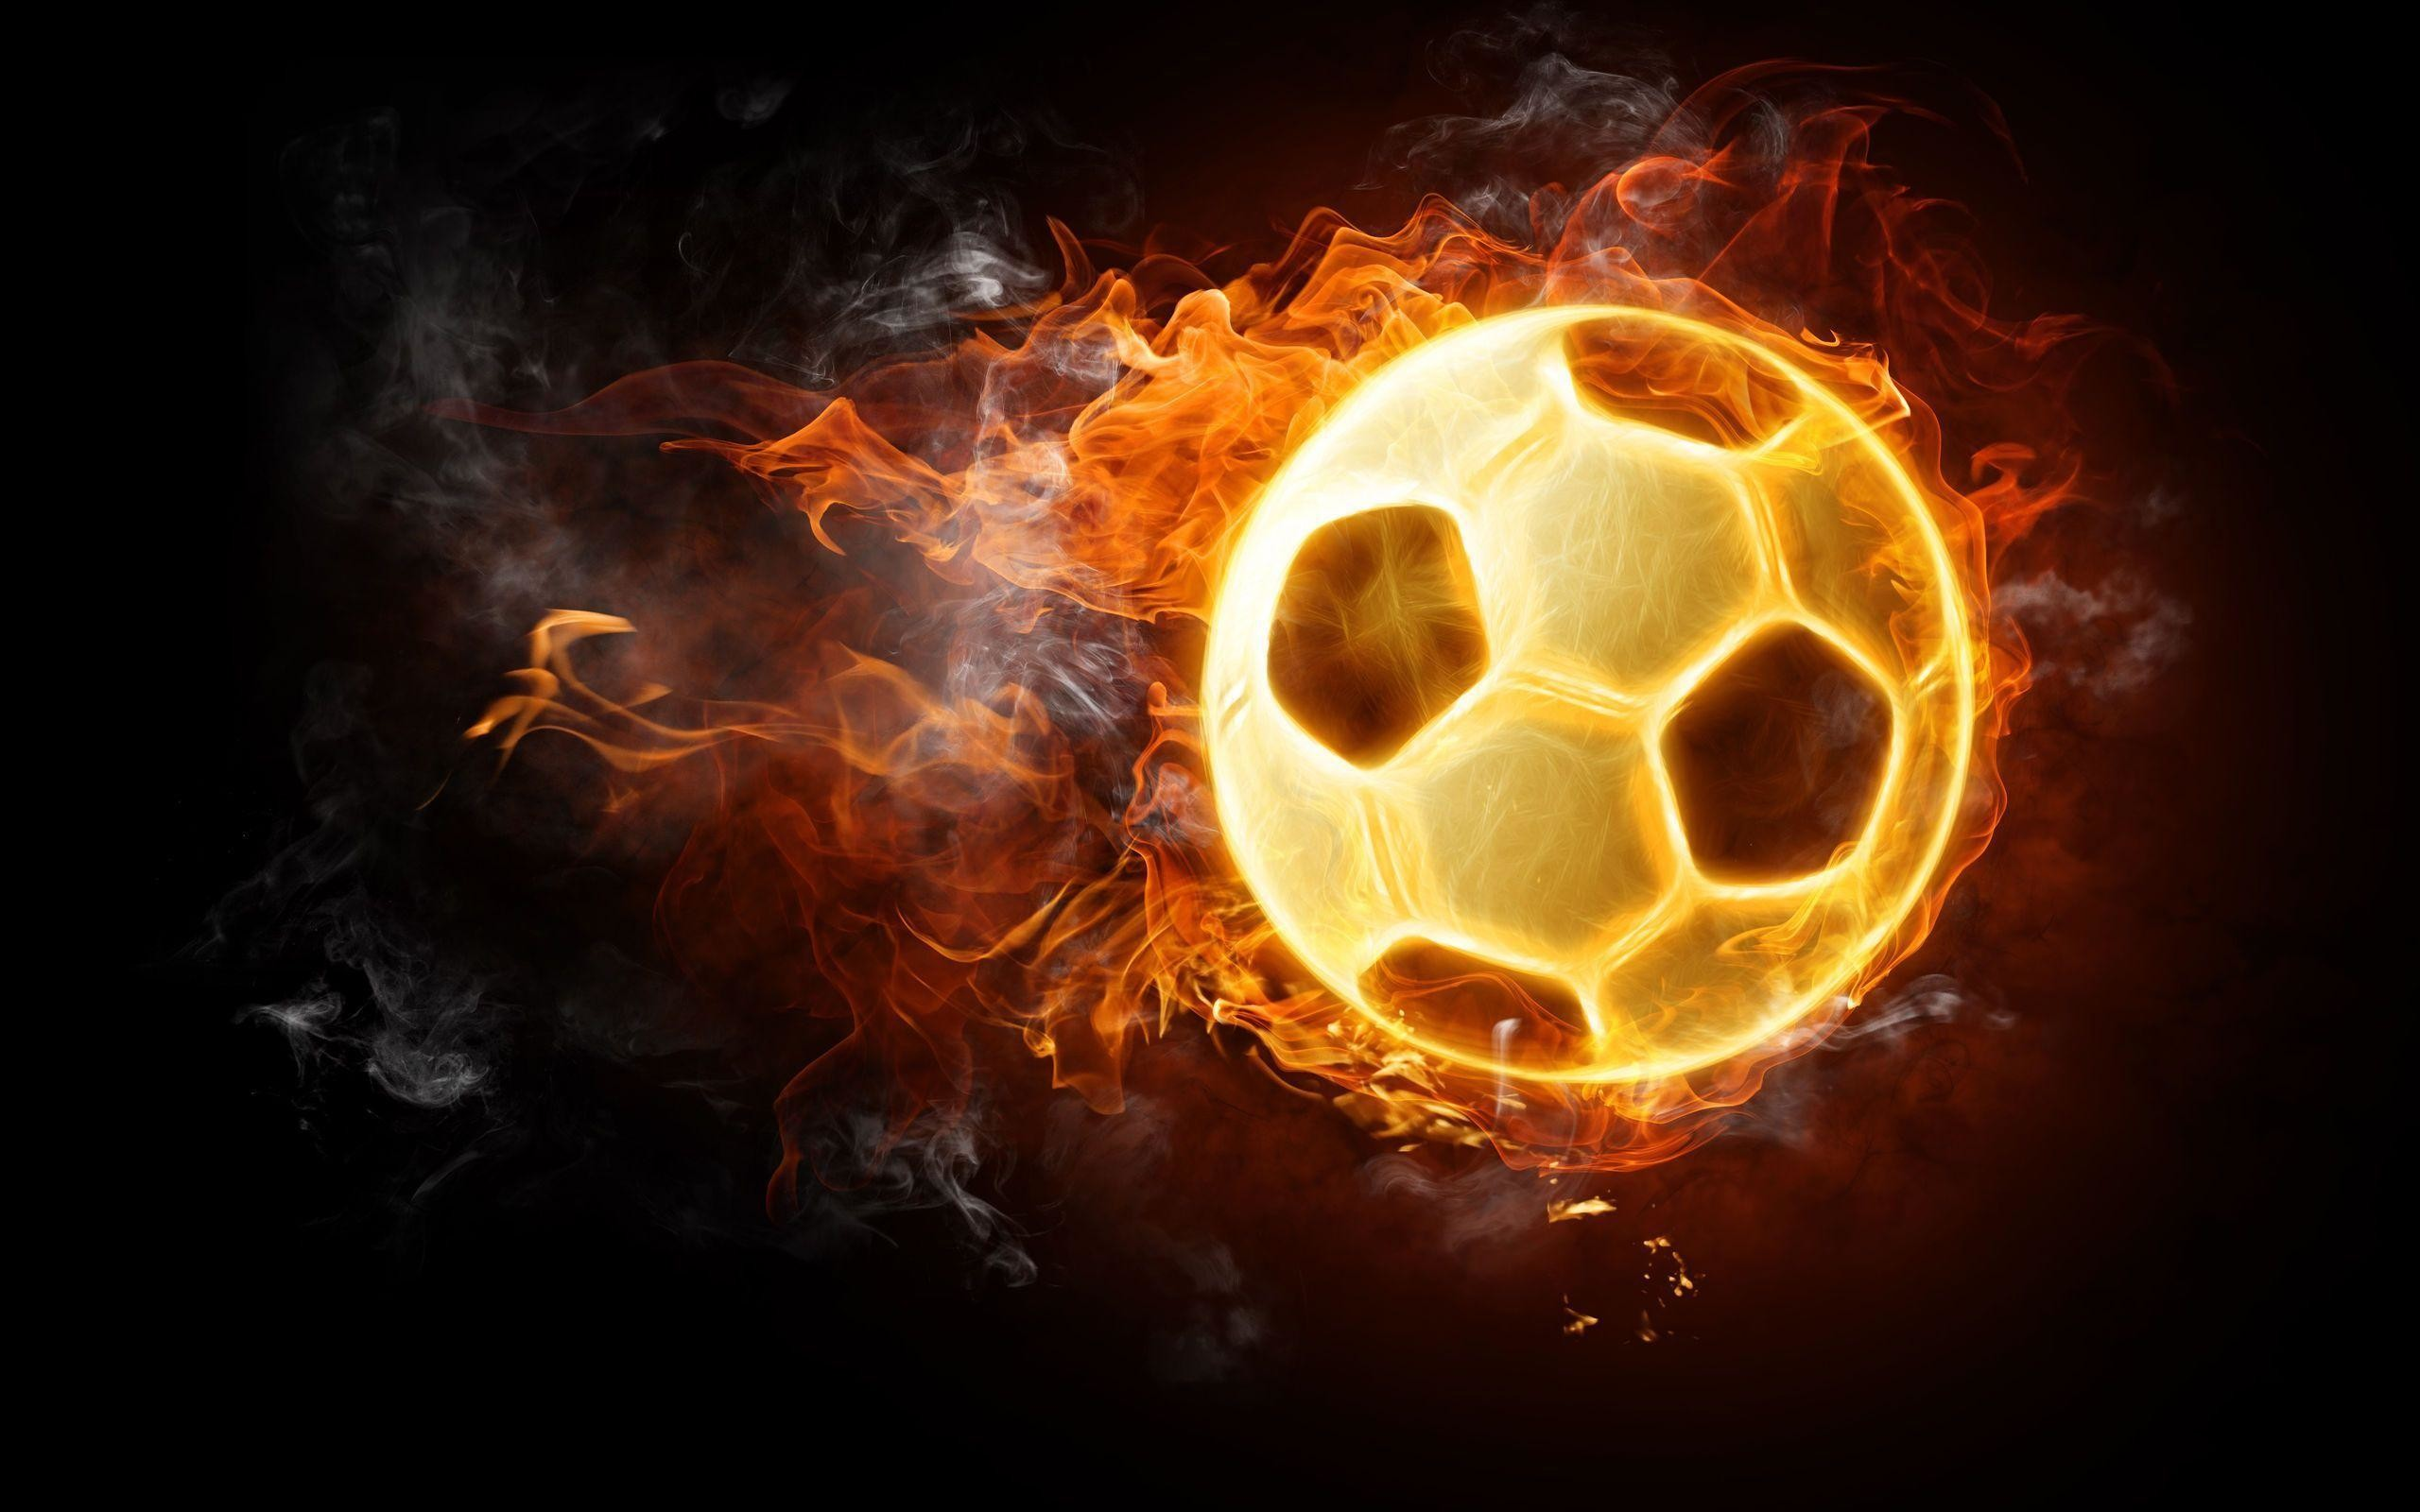 2560x1600 Cool Soccer Ball Wallpaper For Desktop Background 13 HD Wallpapers .